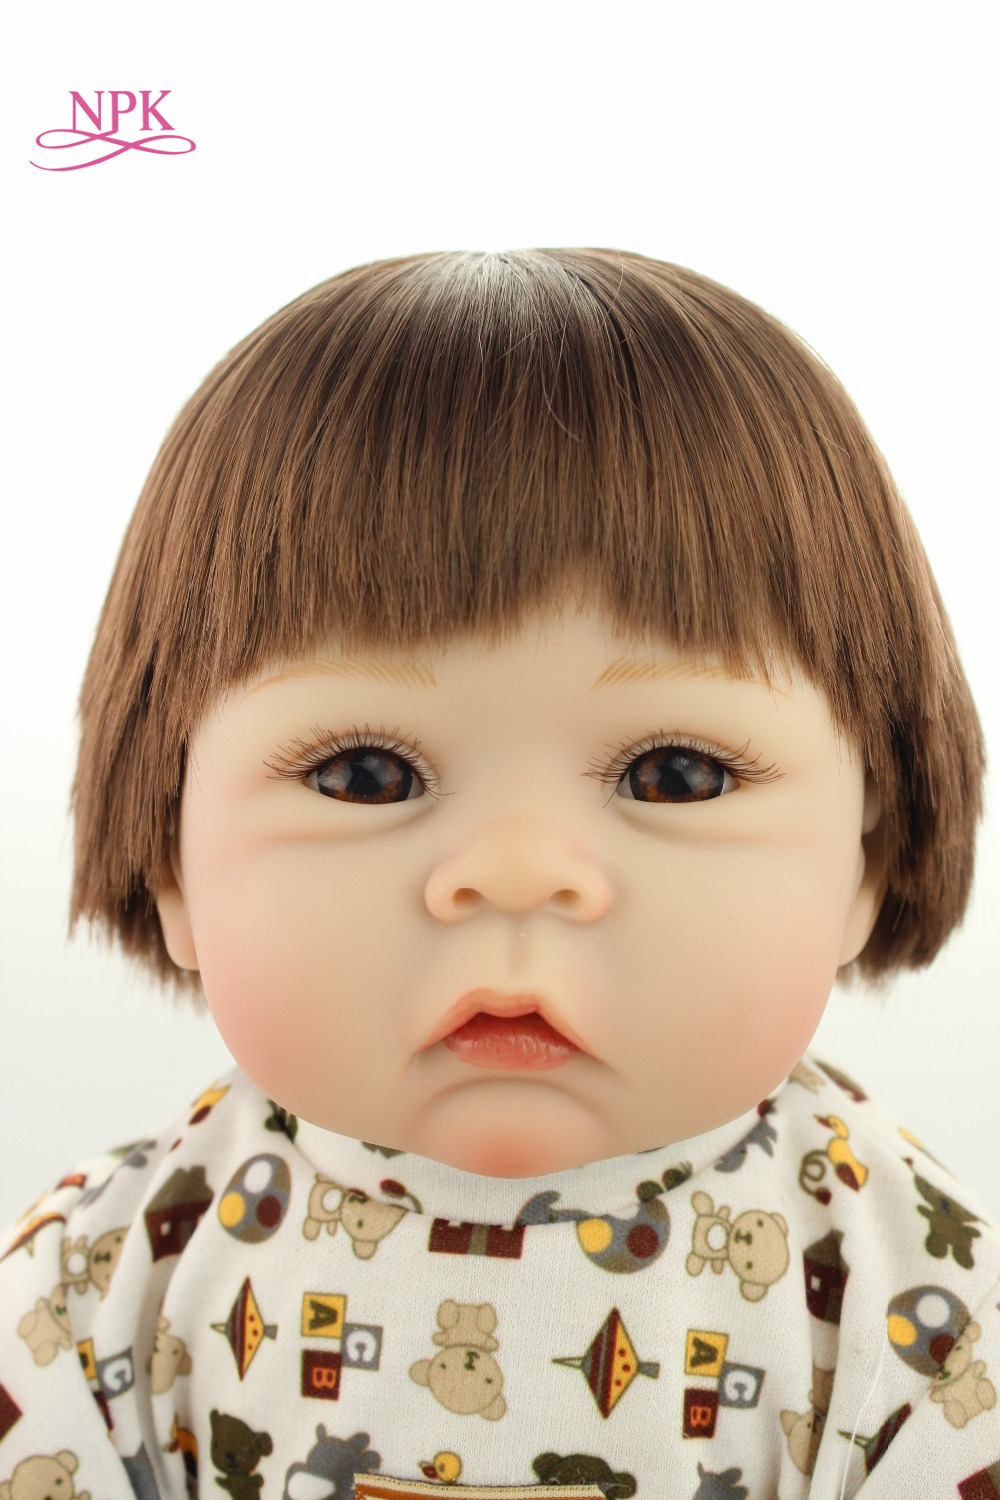 NPK Hot selling doll lifelike reborn baby doll rooted human hair fashion doll Christmas gift lovely giftsNPK Hot selling doll lifelike reborn baby doll rooted human hair fashion doll Christmas gift lovely gifts